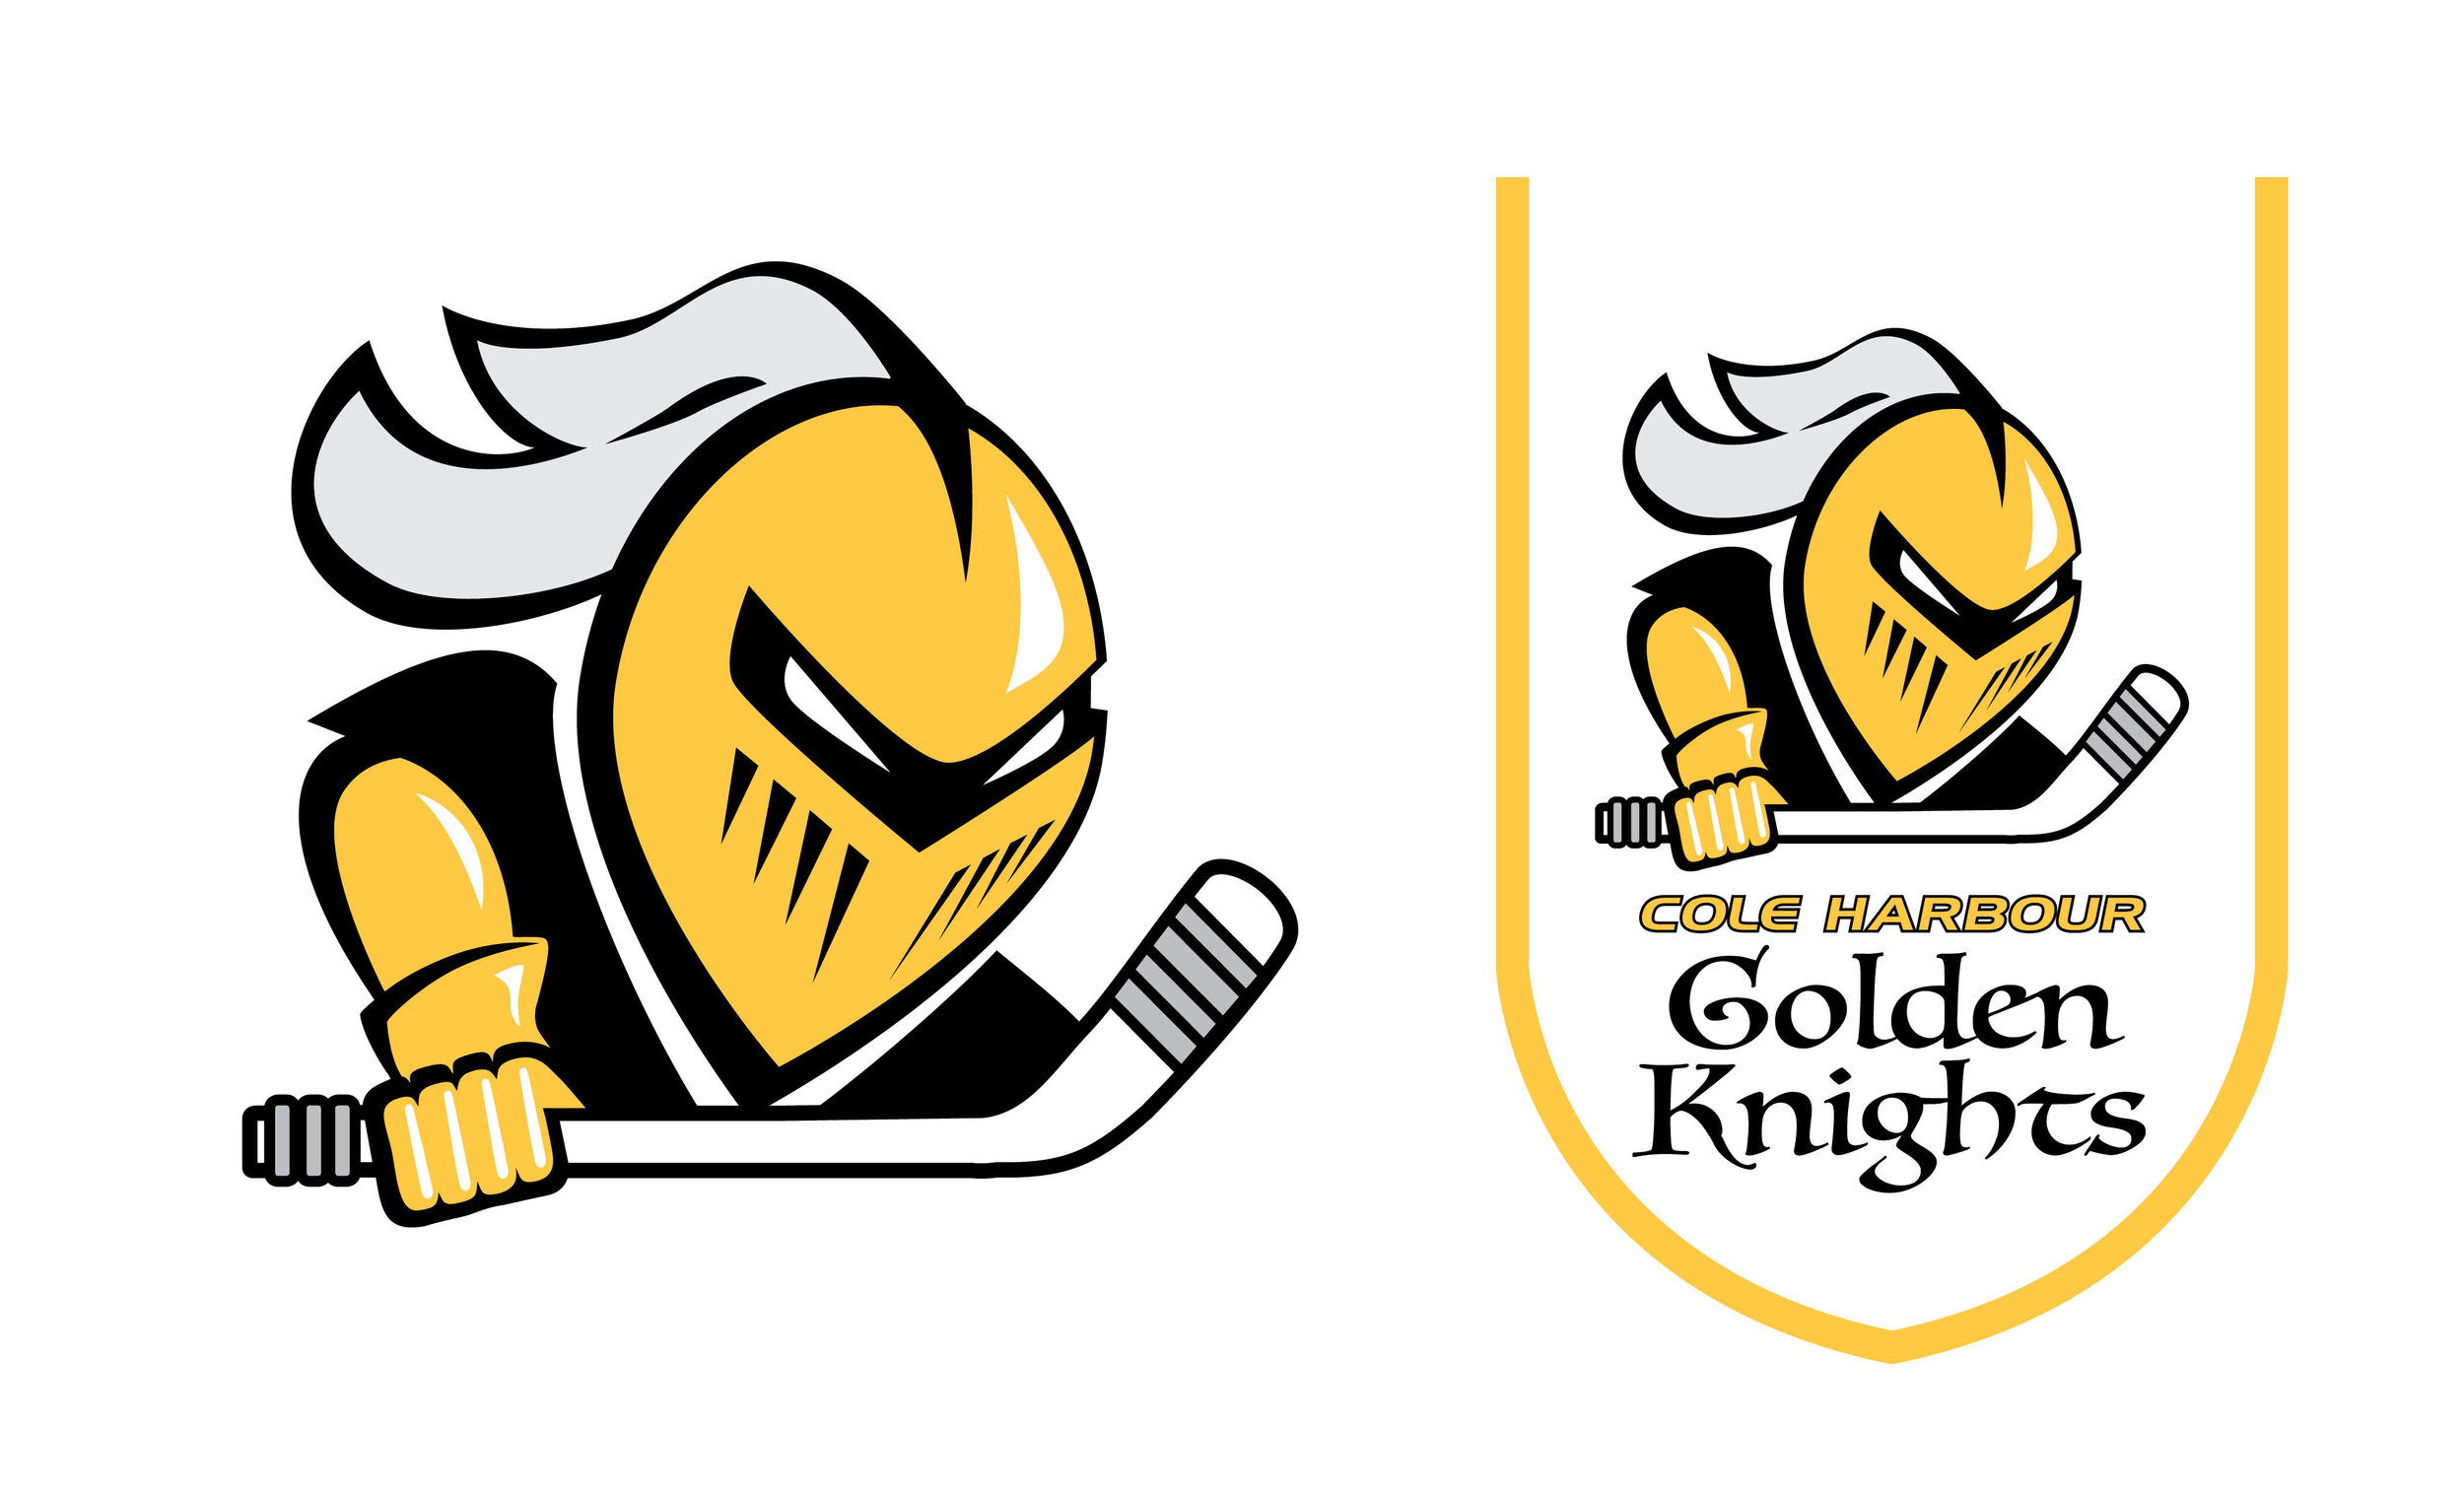 VI_Cole_Harbour_Golden_Knights.jpg